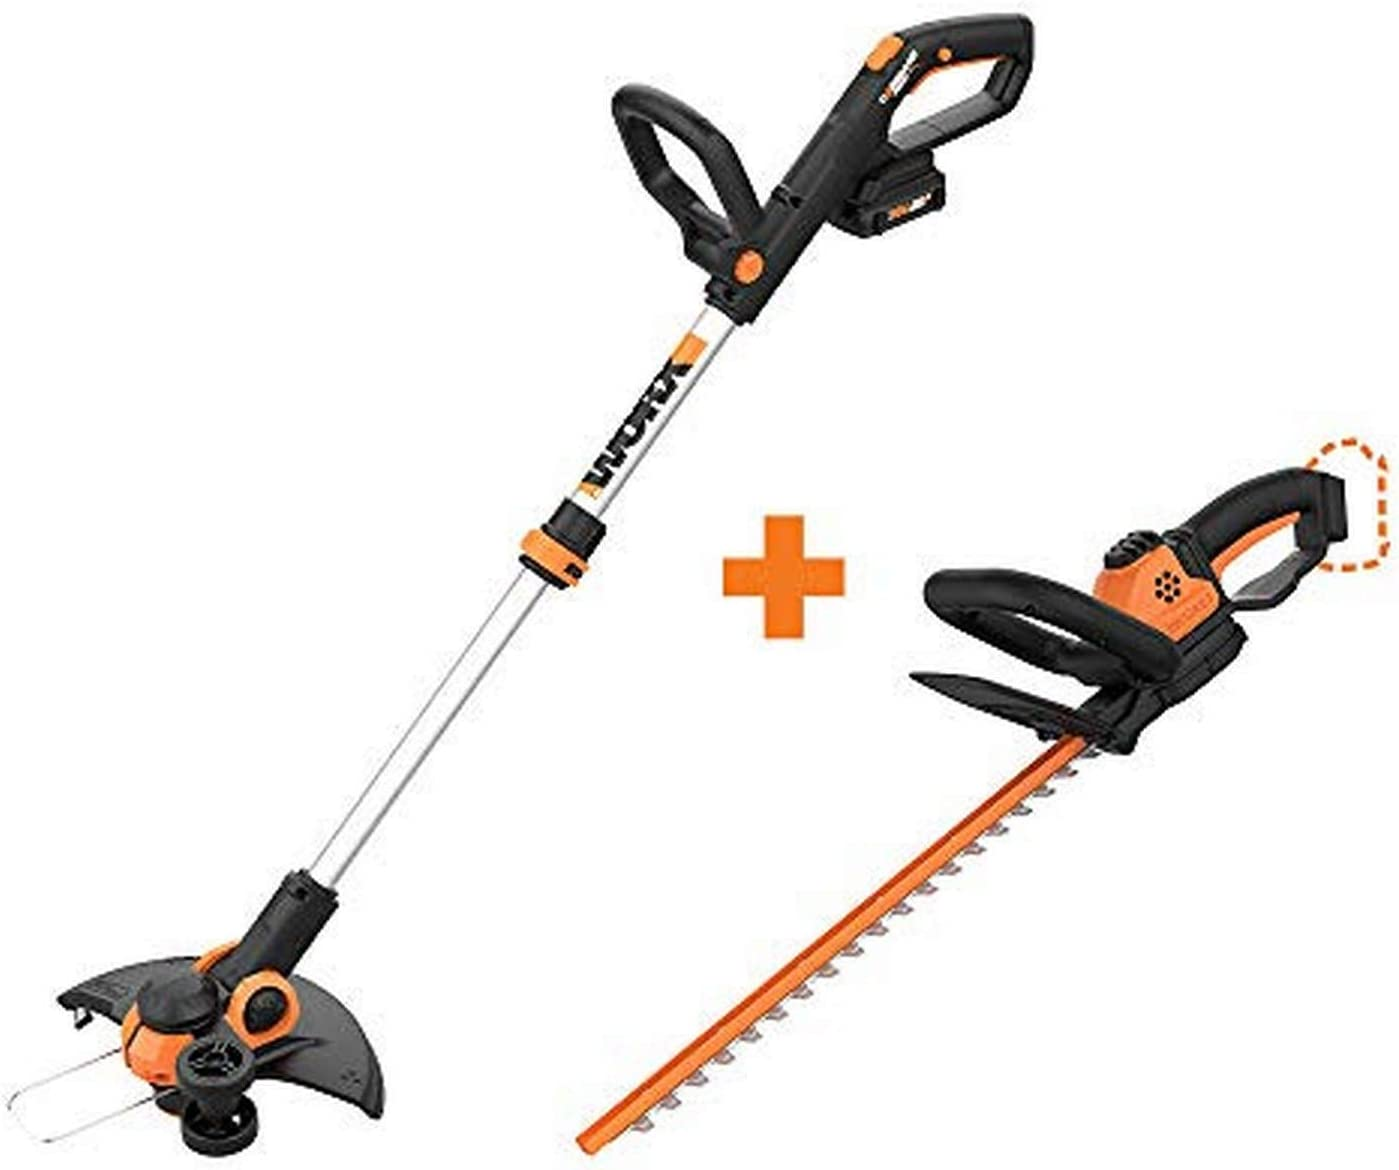 "WORX WG163 GT 3.0 20V PowerShare 12"" Cordless String Trimmer & Edger with Power Share 22-inch Cordless Hedge Trimmer, Bare Tool Only"